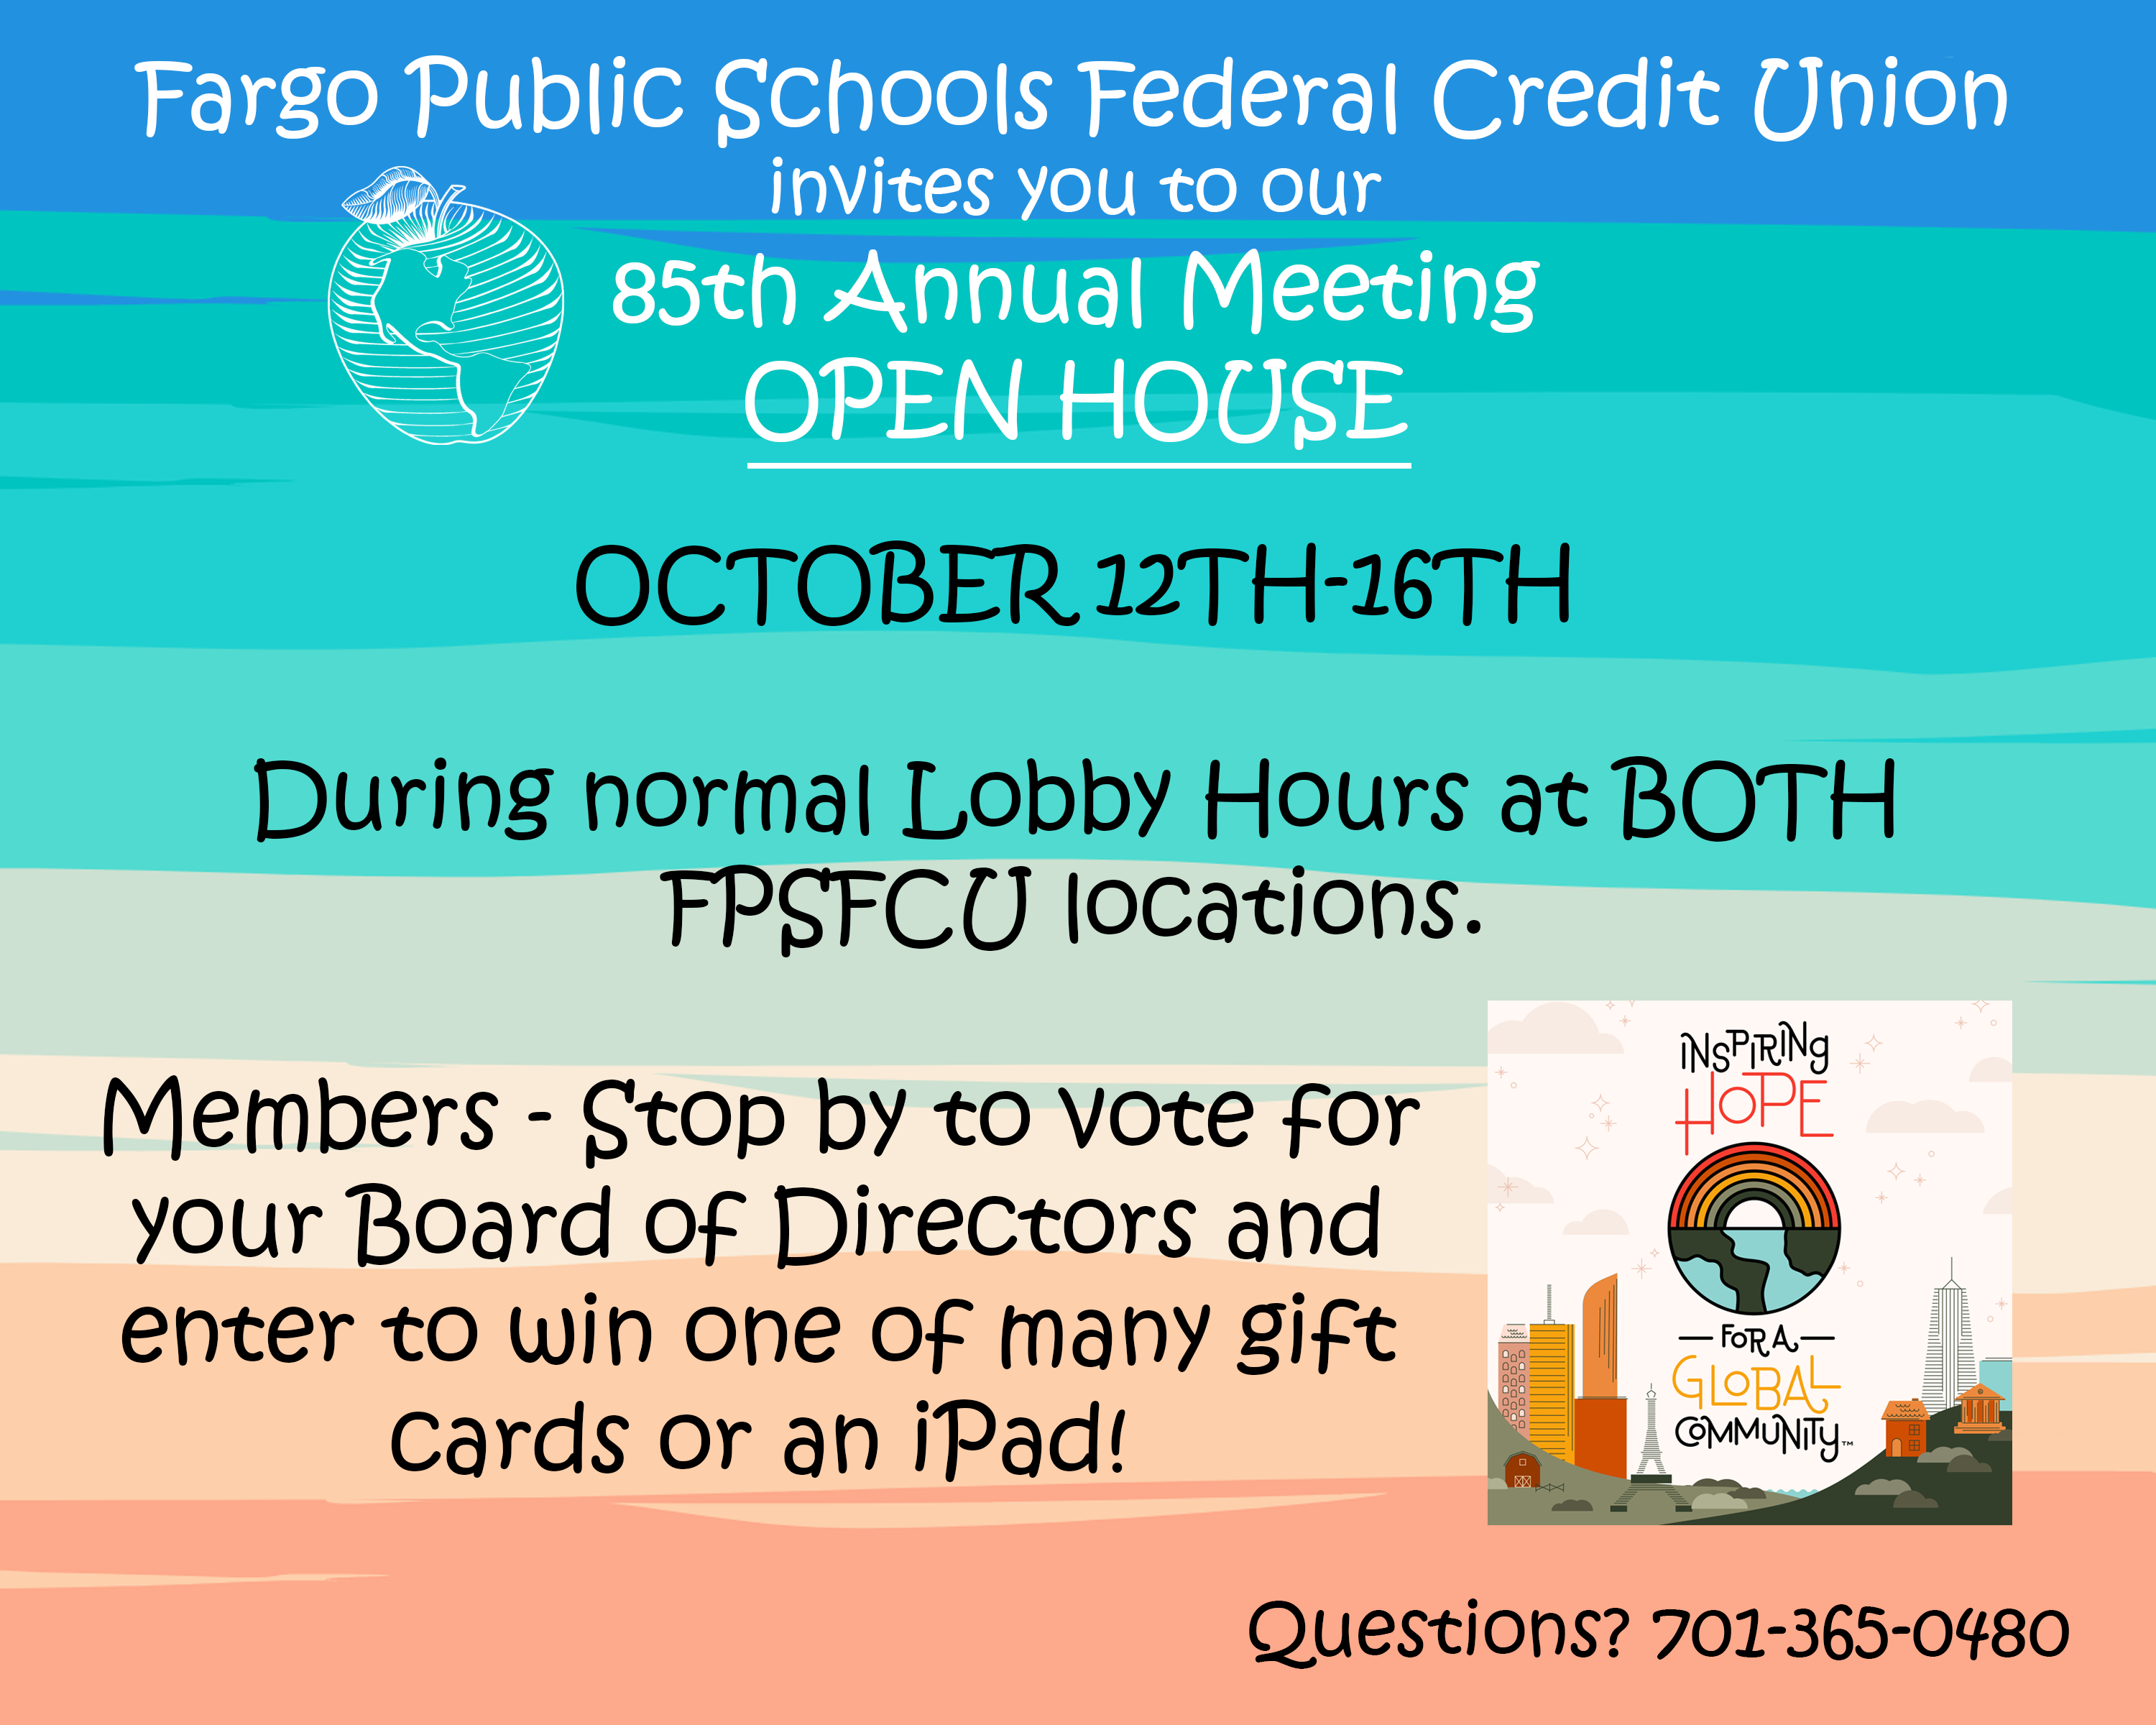 FPSFCU invites you to our 85th Annual Meeting OPEN HOUSE October 12-16 during normal lobby hours at BOTH Locations. Members- stop by to vote for your board of directors and enter to win one of many gift cards or an ipad!